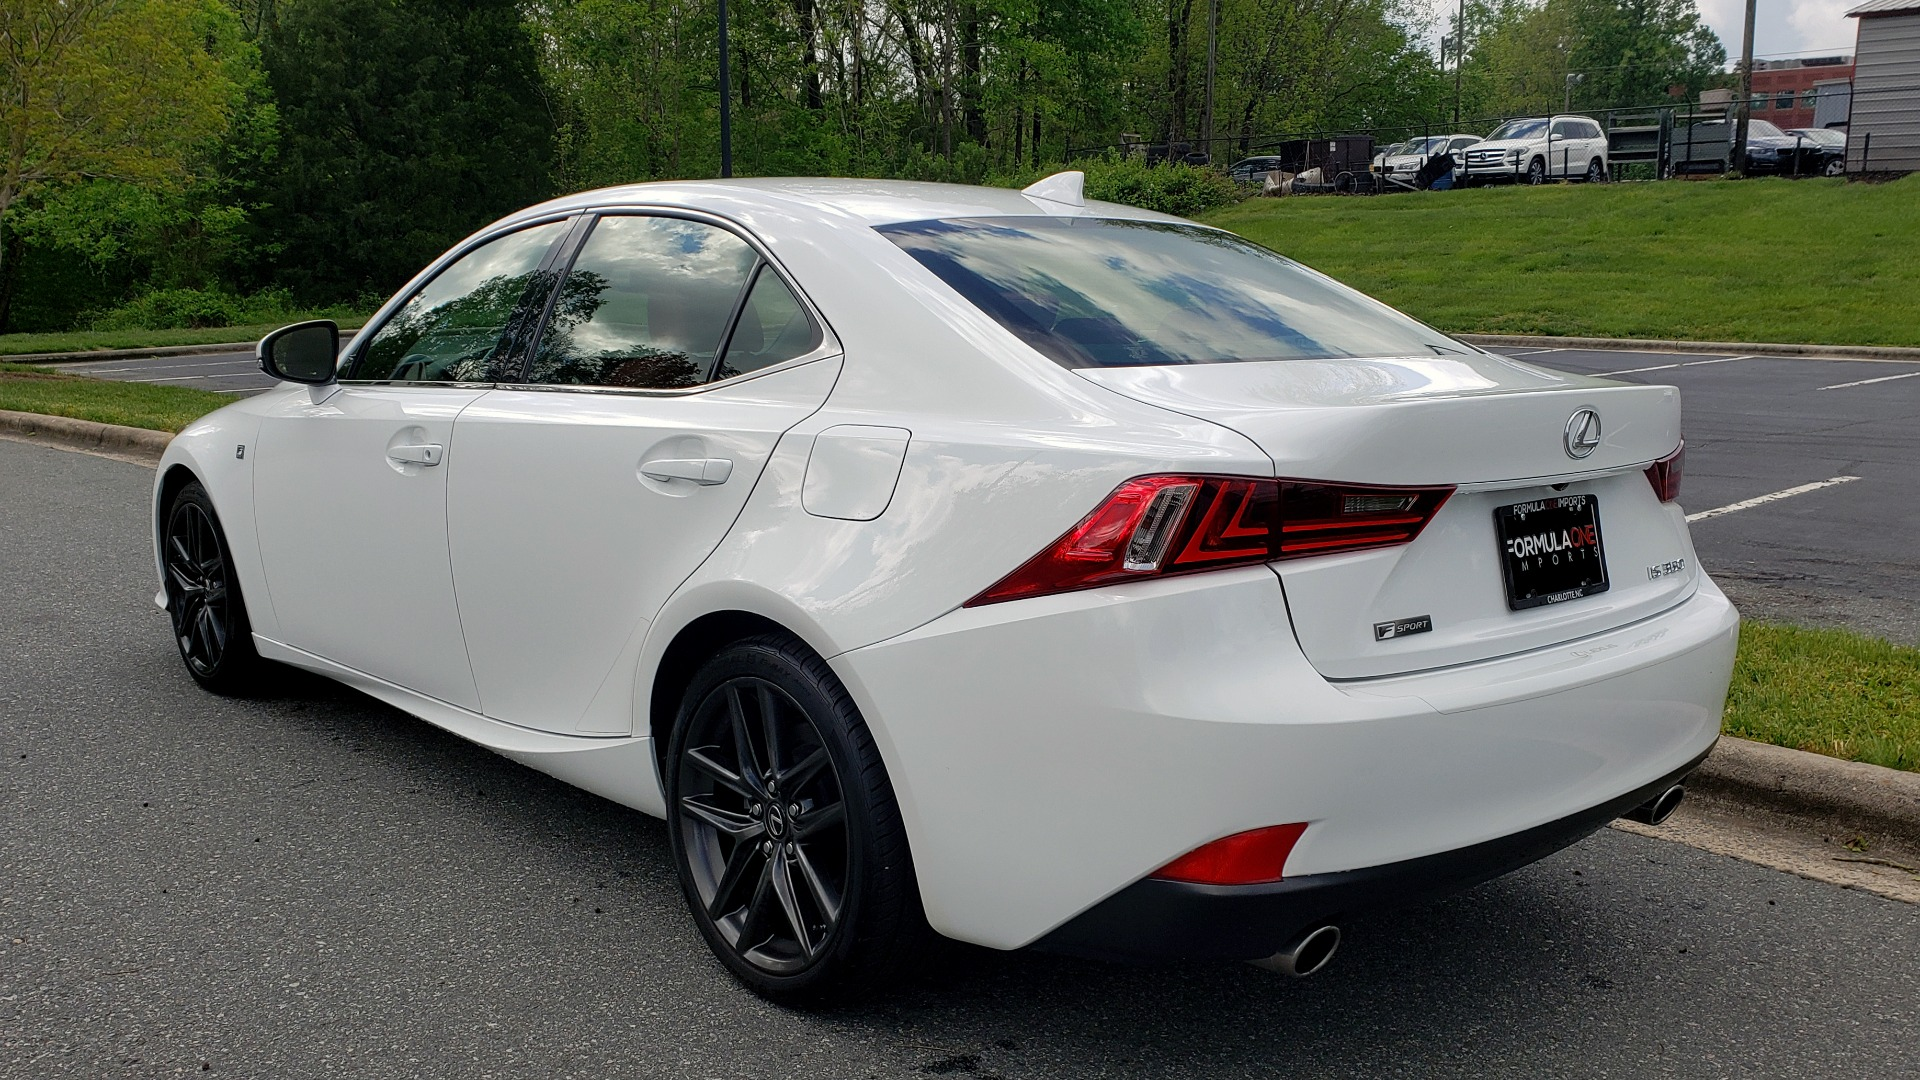 Used 2016 Lexus IS 350 F-SPORT / NAV / BSM / SUNROOF / REARVIEW / VENT SEATS for sale Sold at Formula Imports in Charlotte NC 28227 3